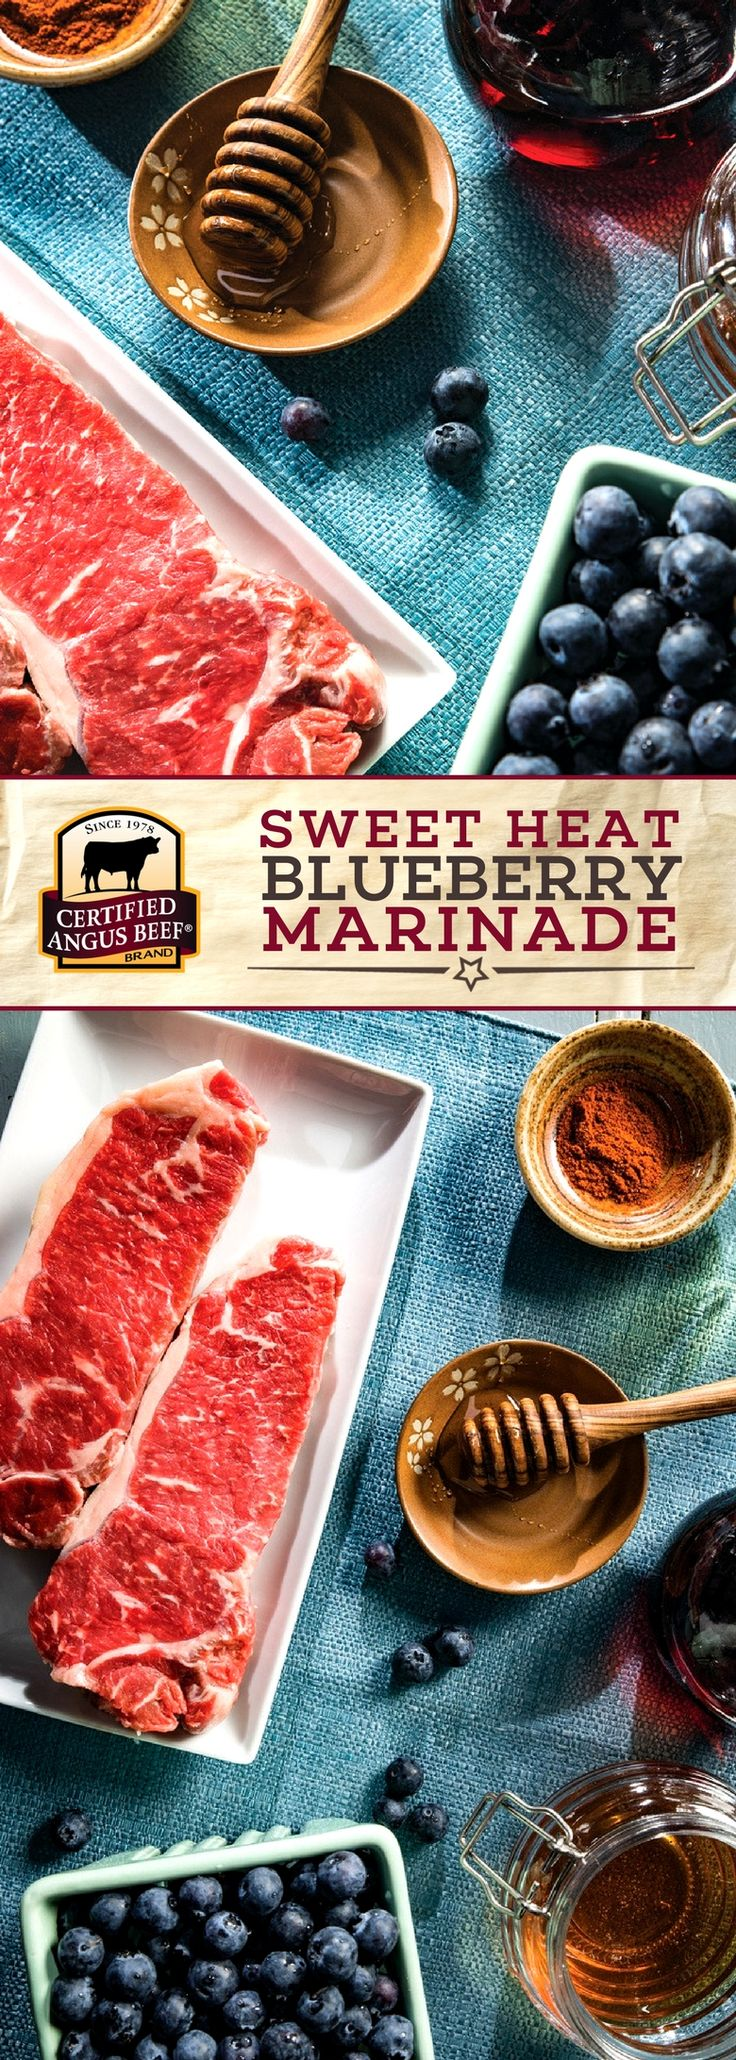 Certified Angus Beef®️️ brand Sweet Heat Blueberry Marinade pairs the deliciously sweet combination of blueberries and HONEY with red wine vinegar, peanut oil, and CAYENNE pepper for a deeply flavorful marinade! Marinate your favorite cut of beef overnight for the best results. #bestangusbeef #certifiedangusbeef #marinade #seasoning